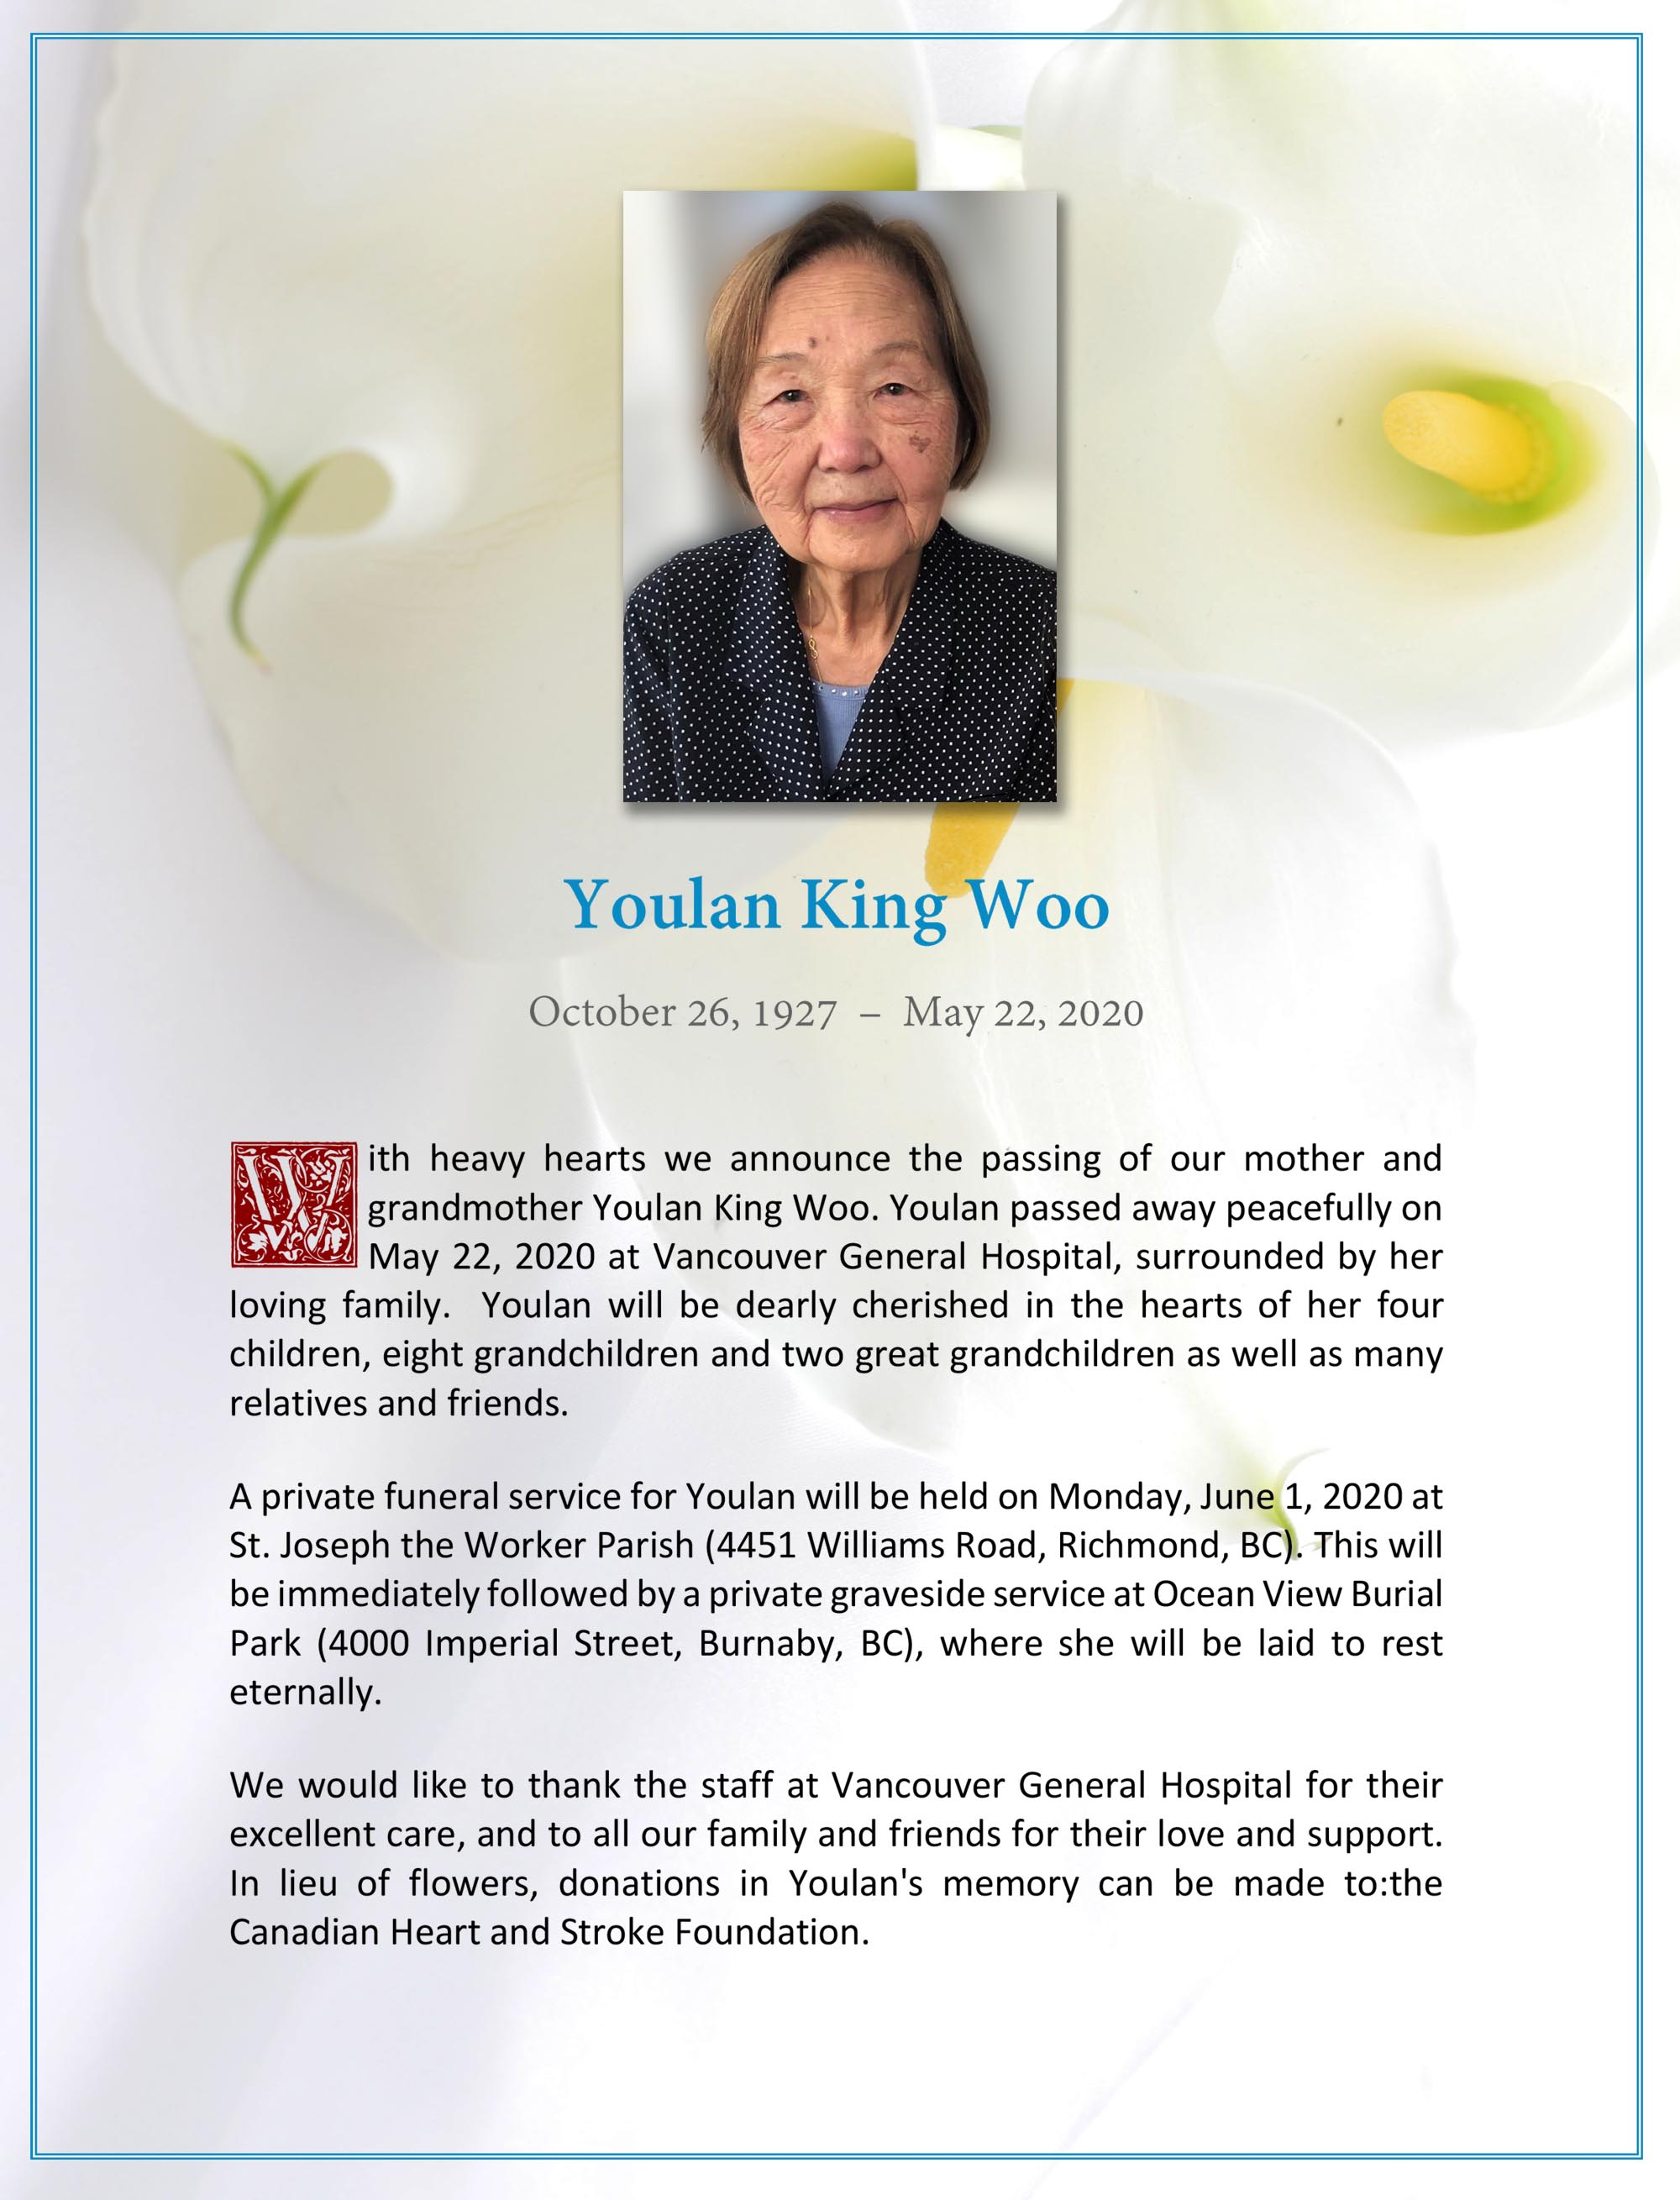 Obituary for Youlan King Woo